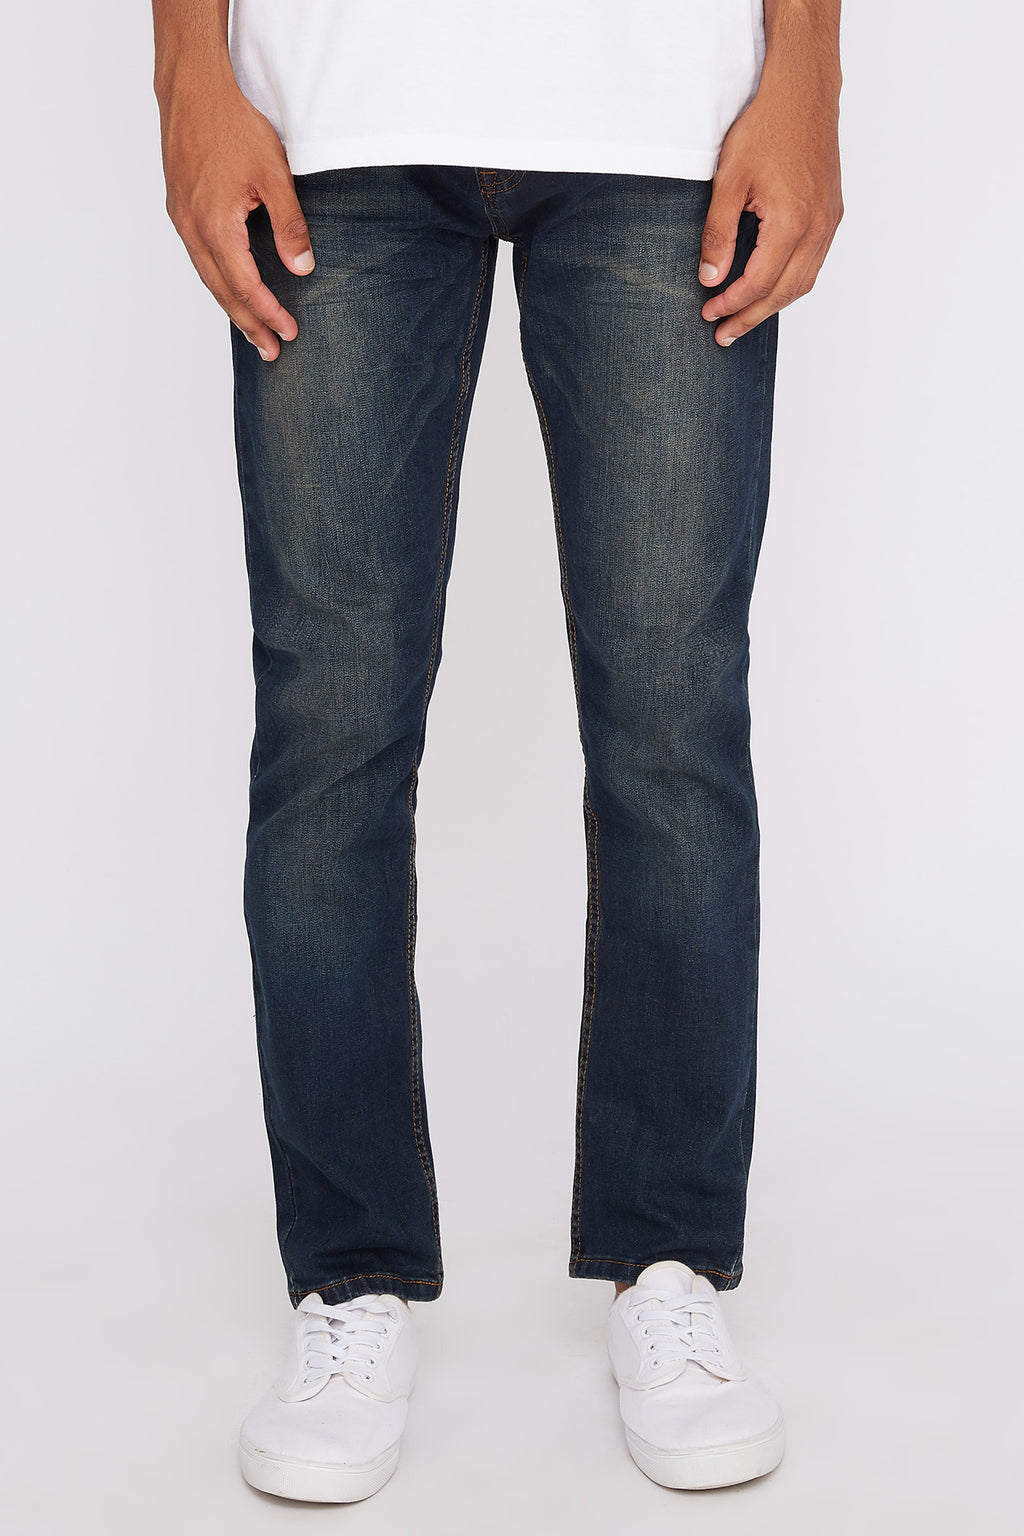 West49 Mens Dark Wash Stretch Slim Jeans